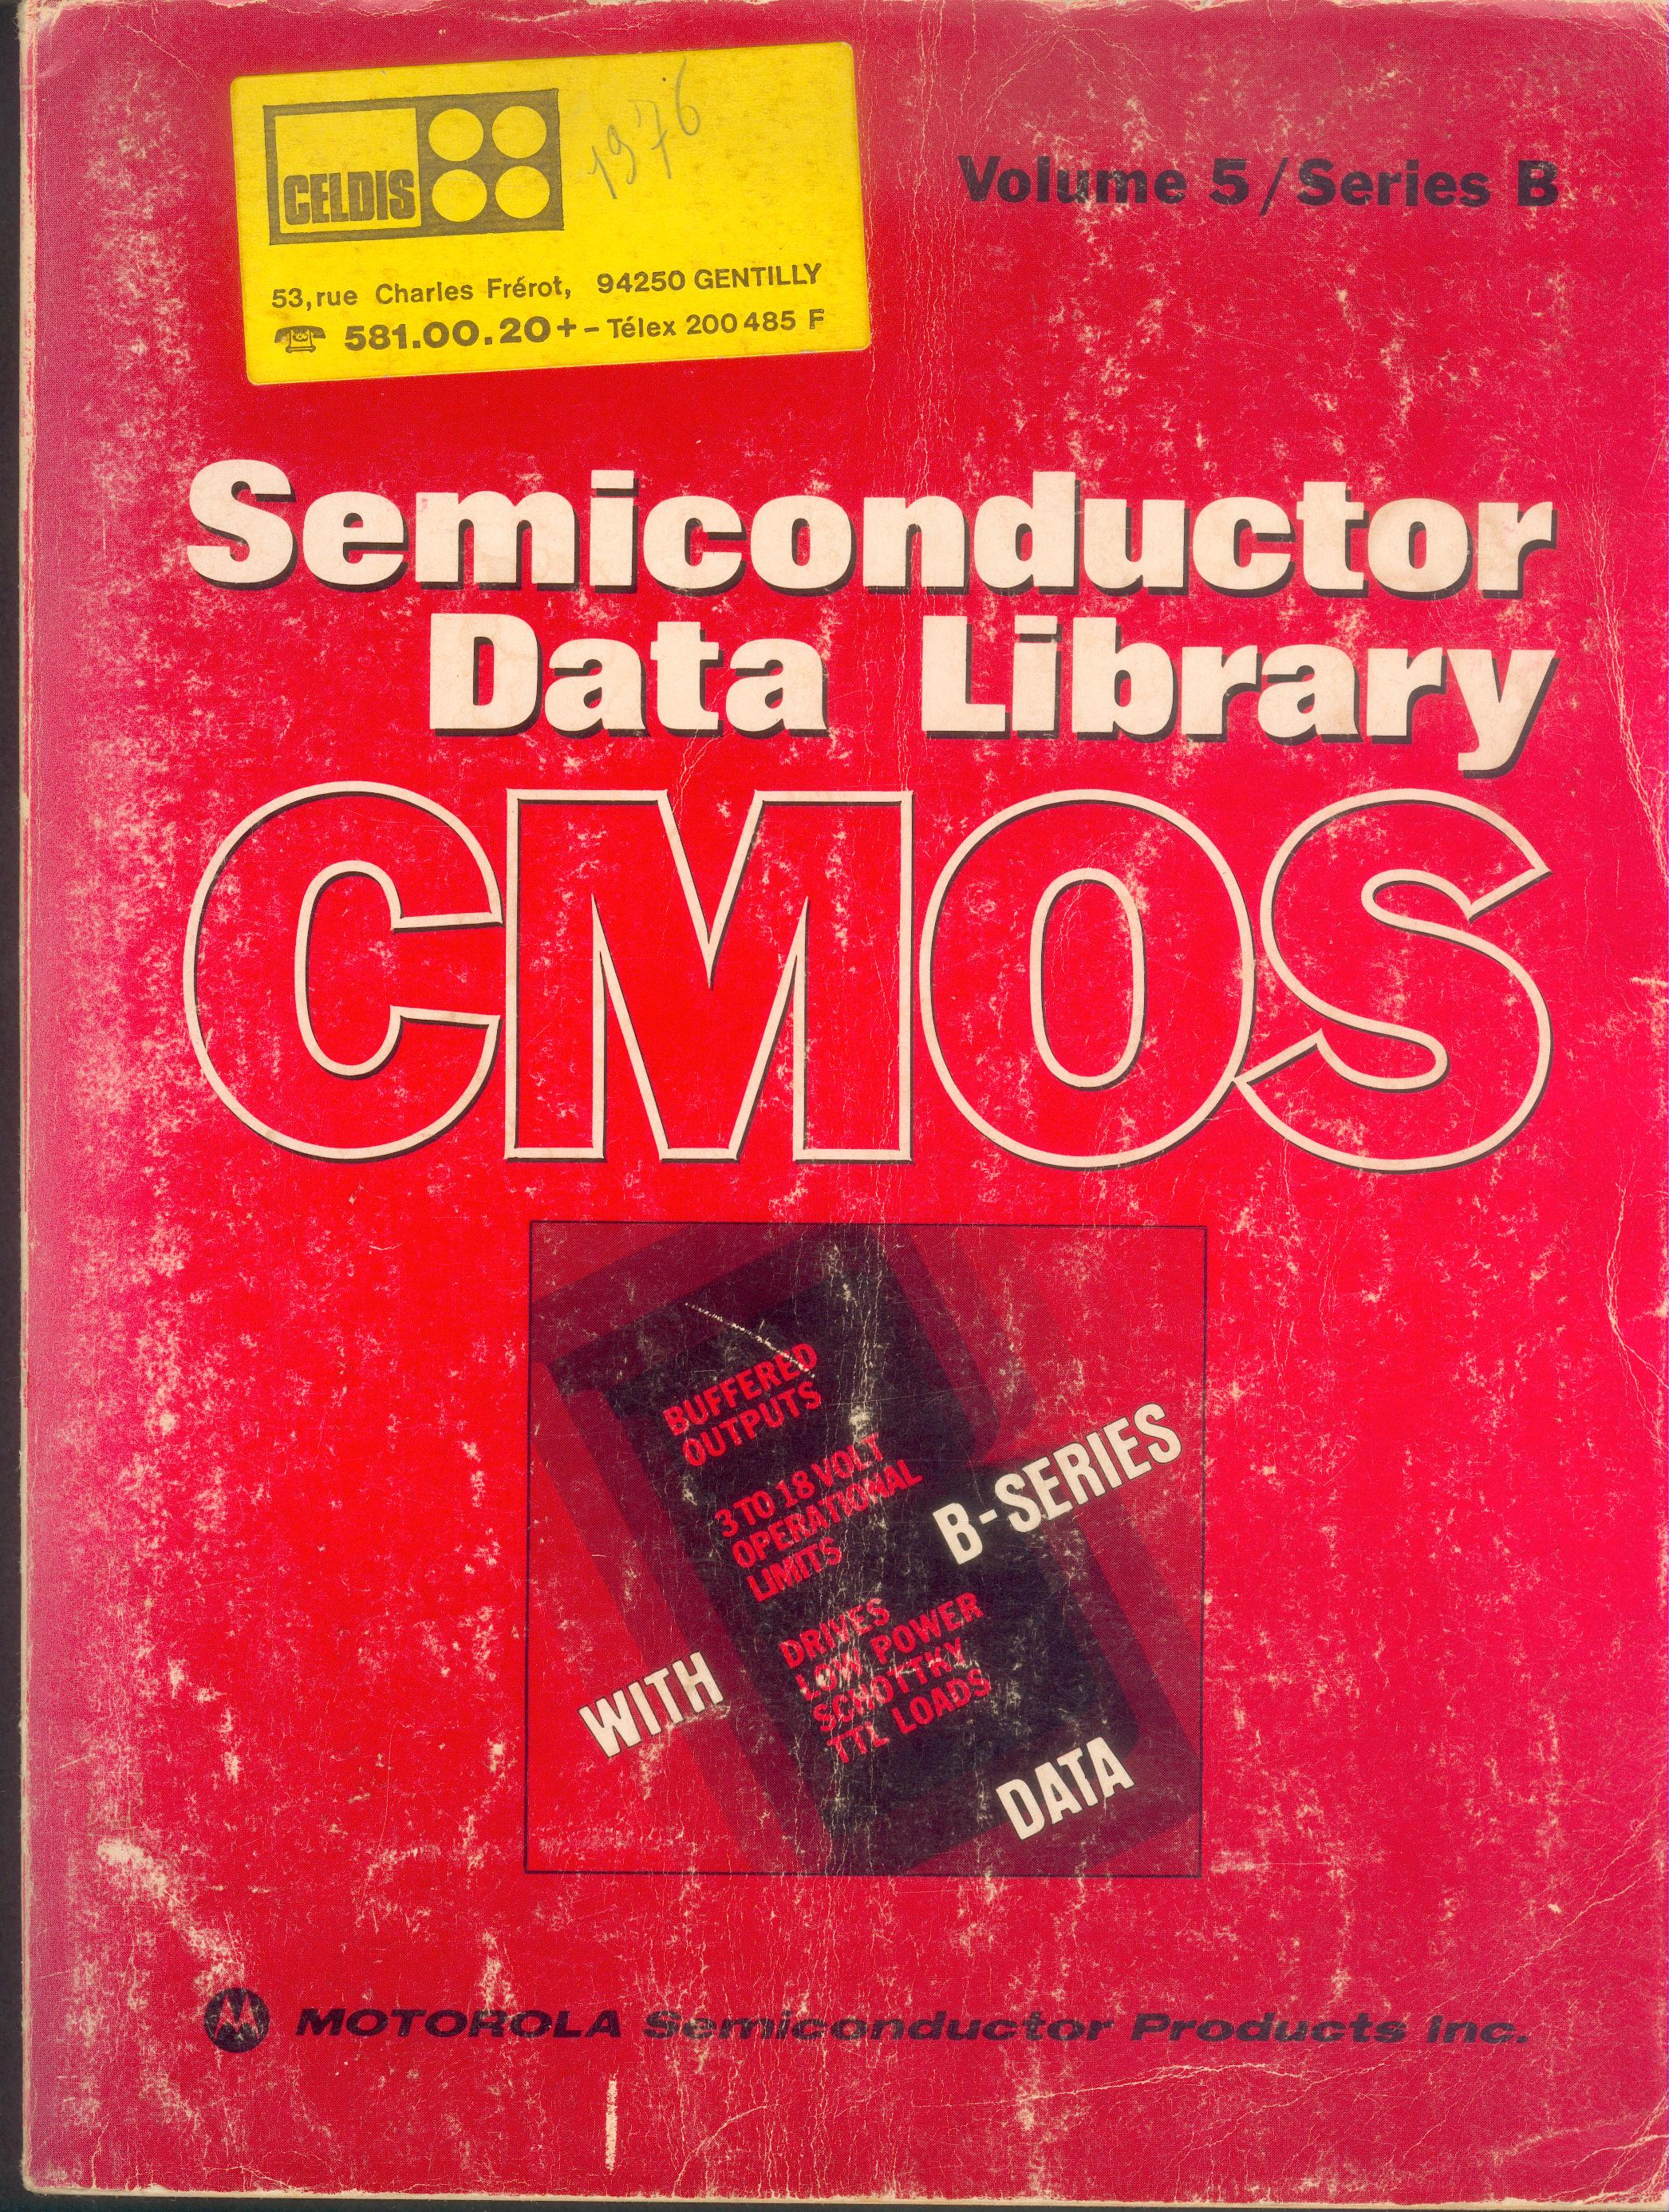 Motorola Semiconductor Data Library Cmos Volume 5 Series B 1976 Bit Binary To Bcd Converter Circuit 8bit A D Contains The Following Sheets